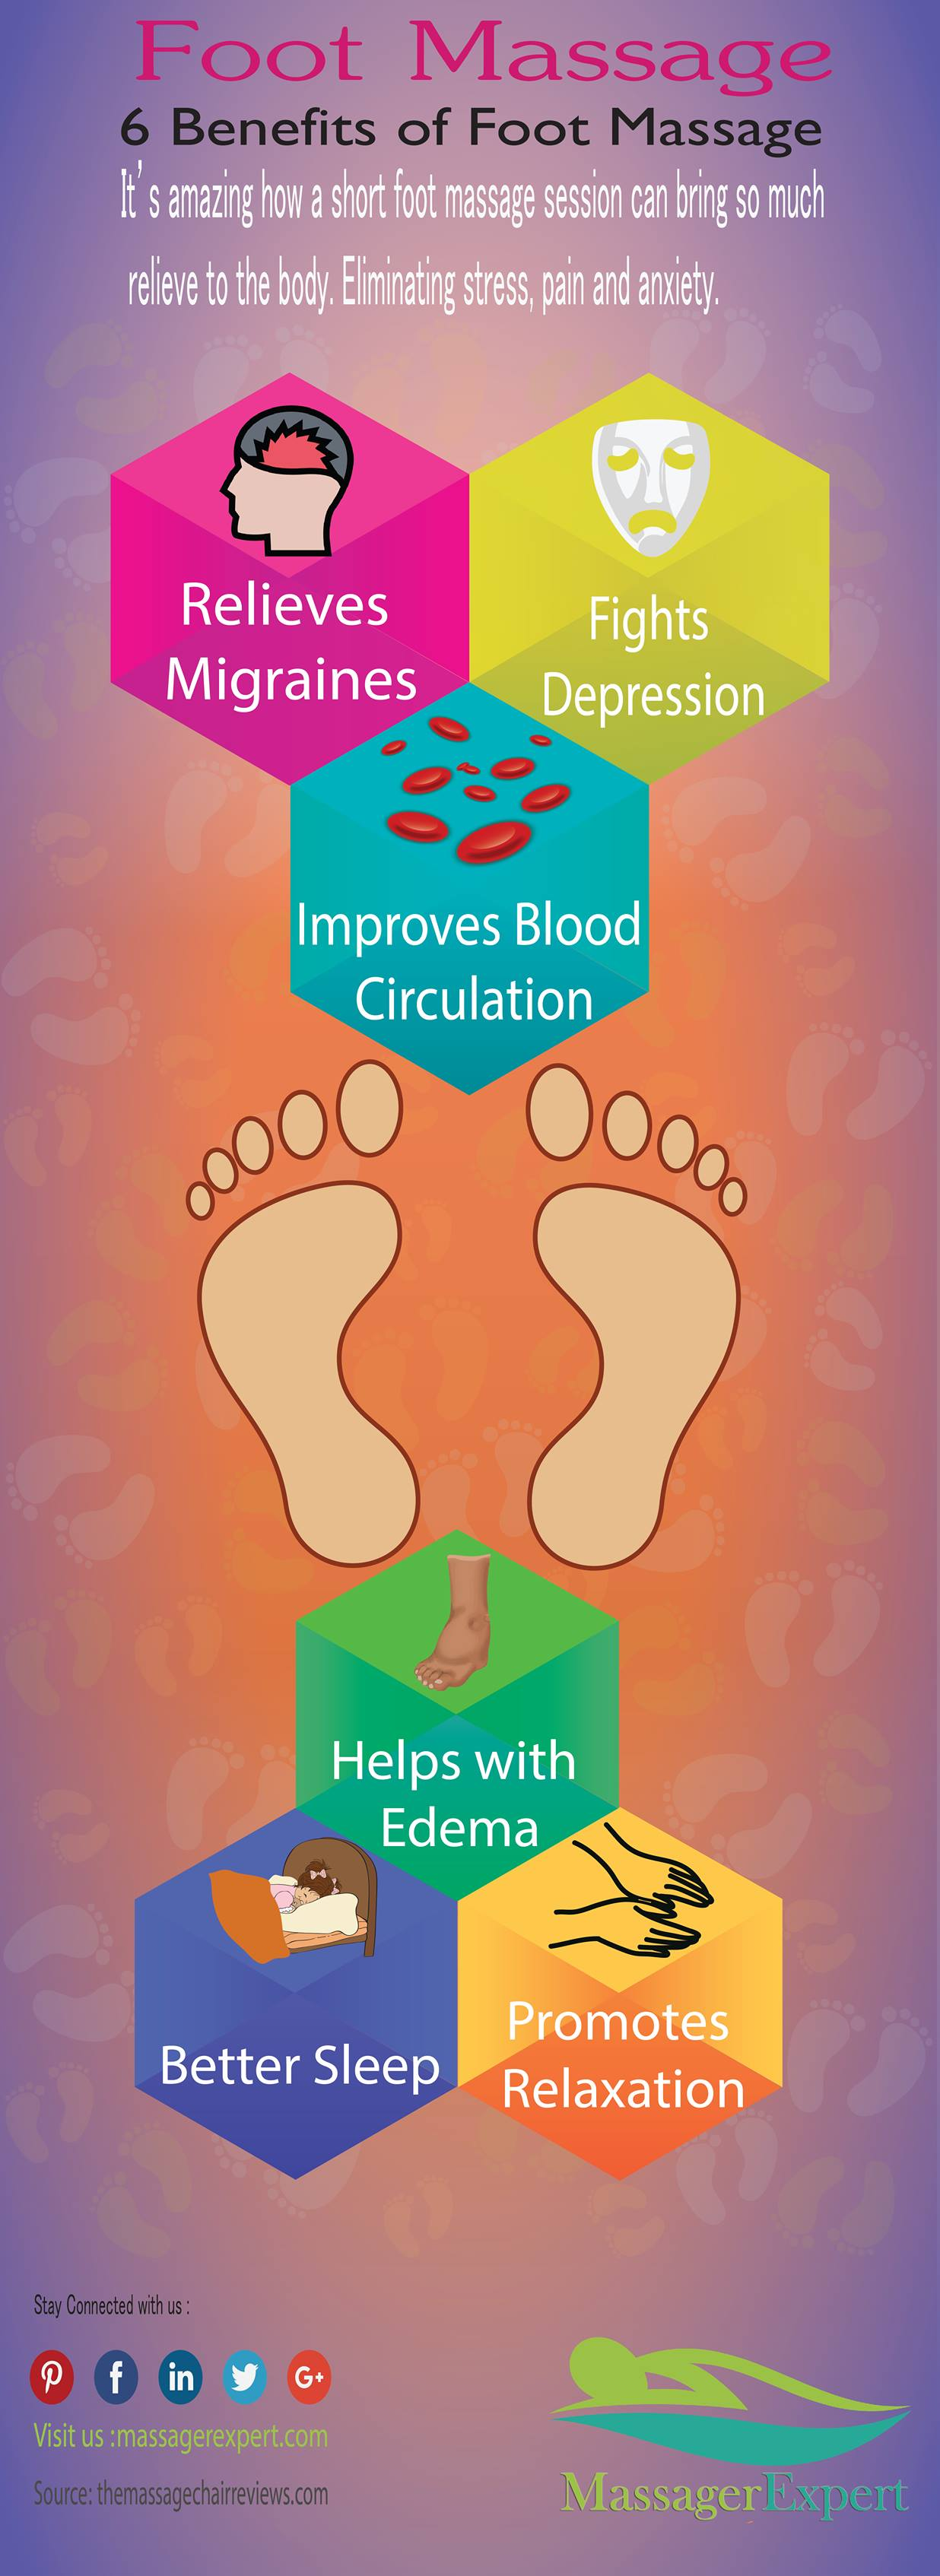 Benefits of Foot Massage [Info graphic]